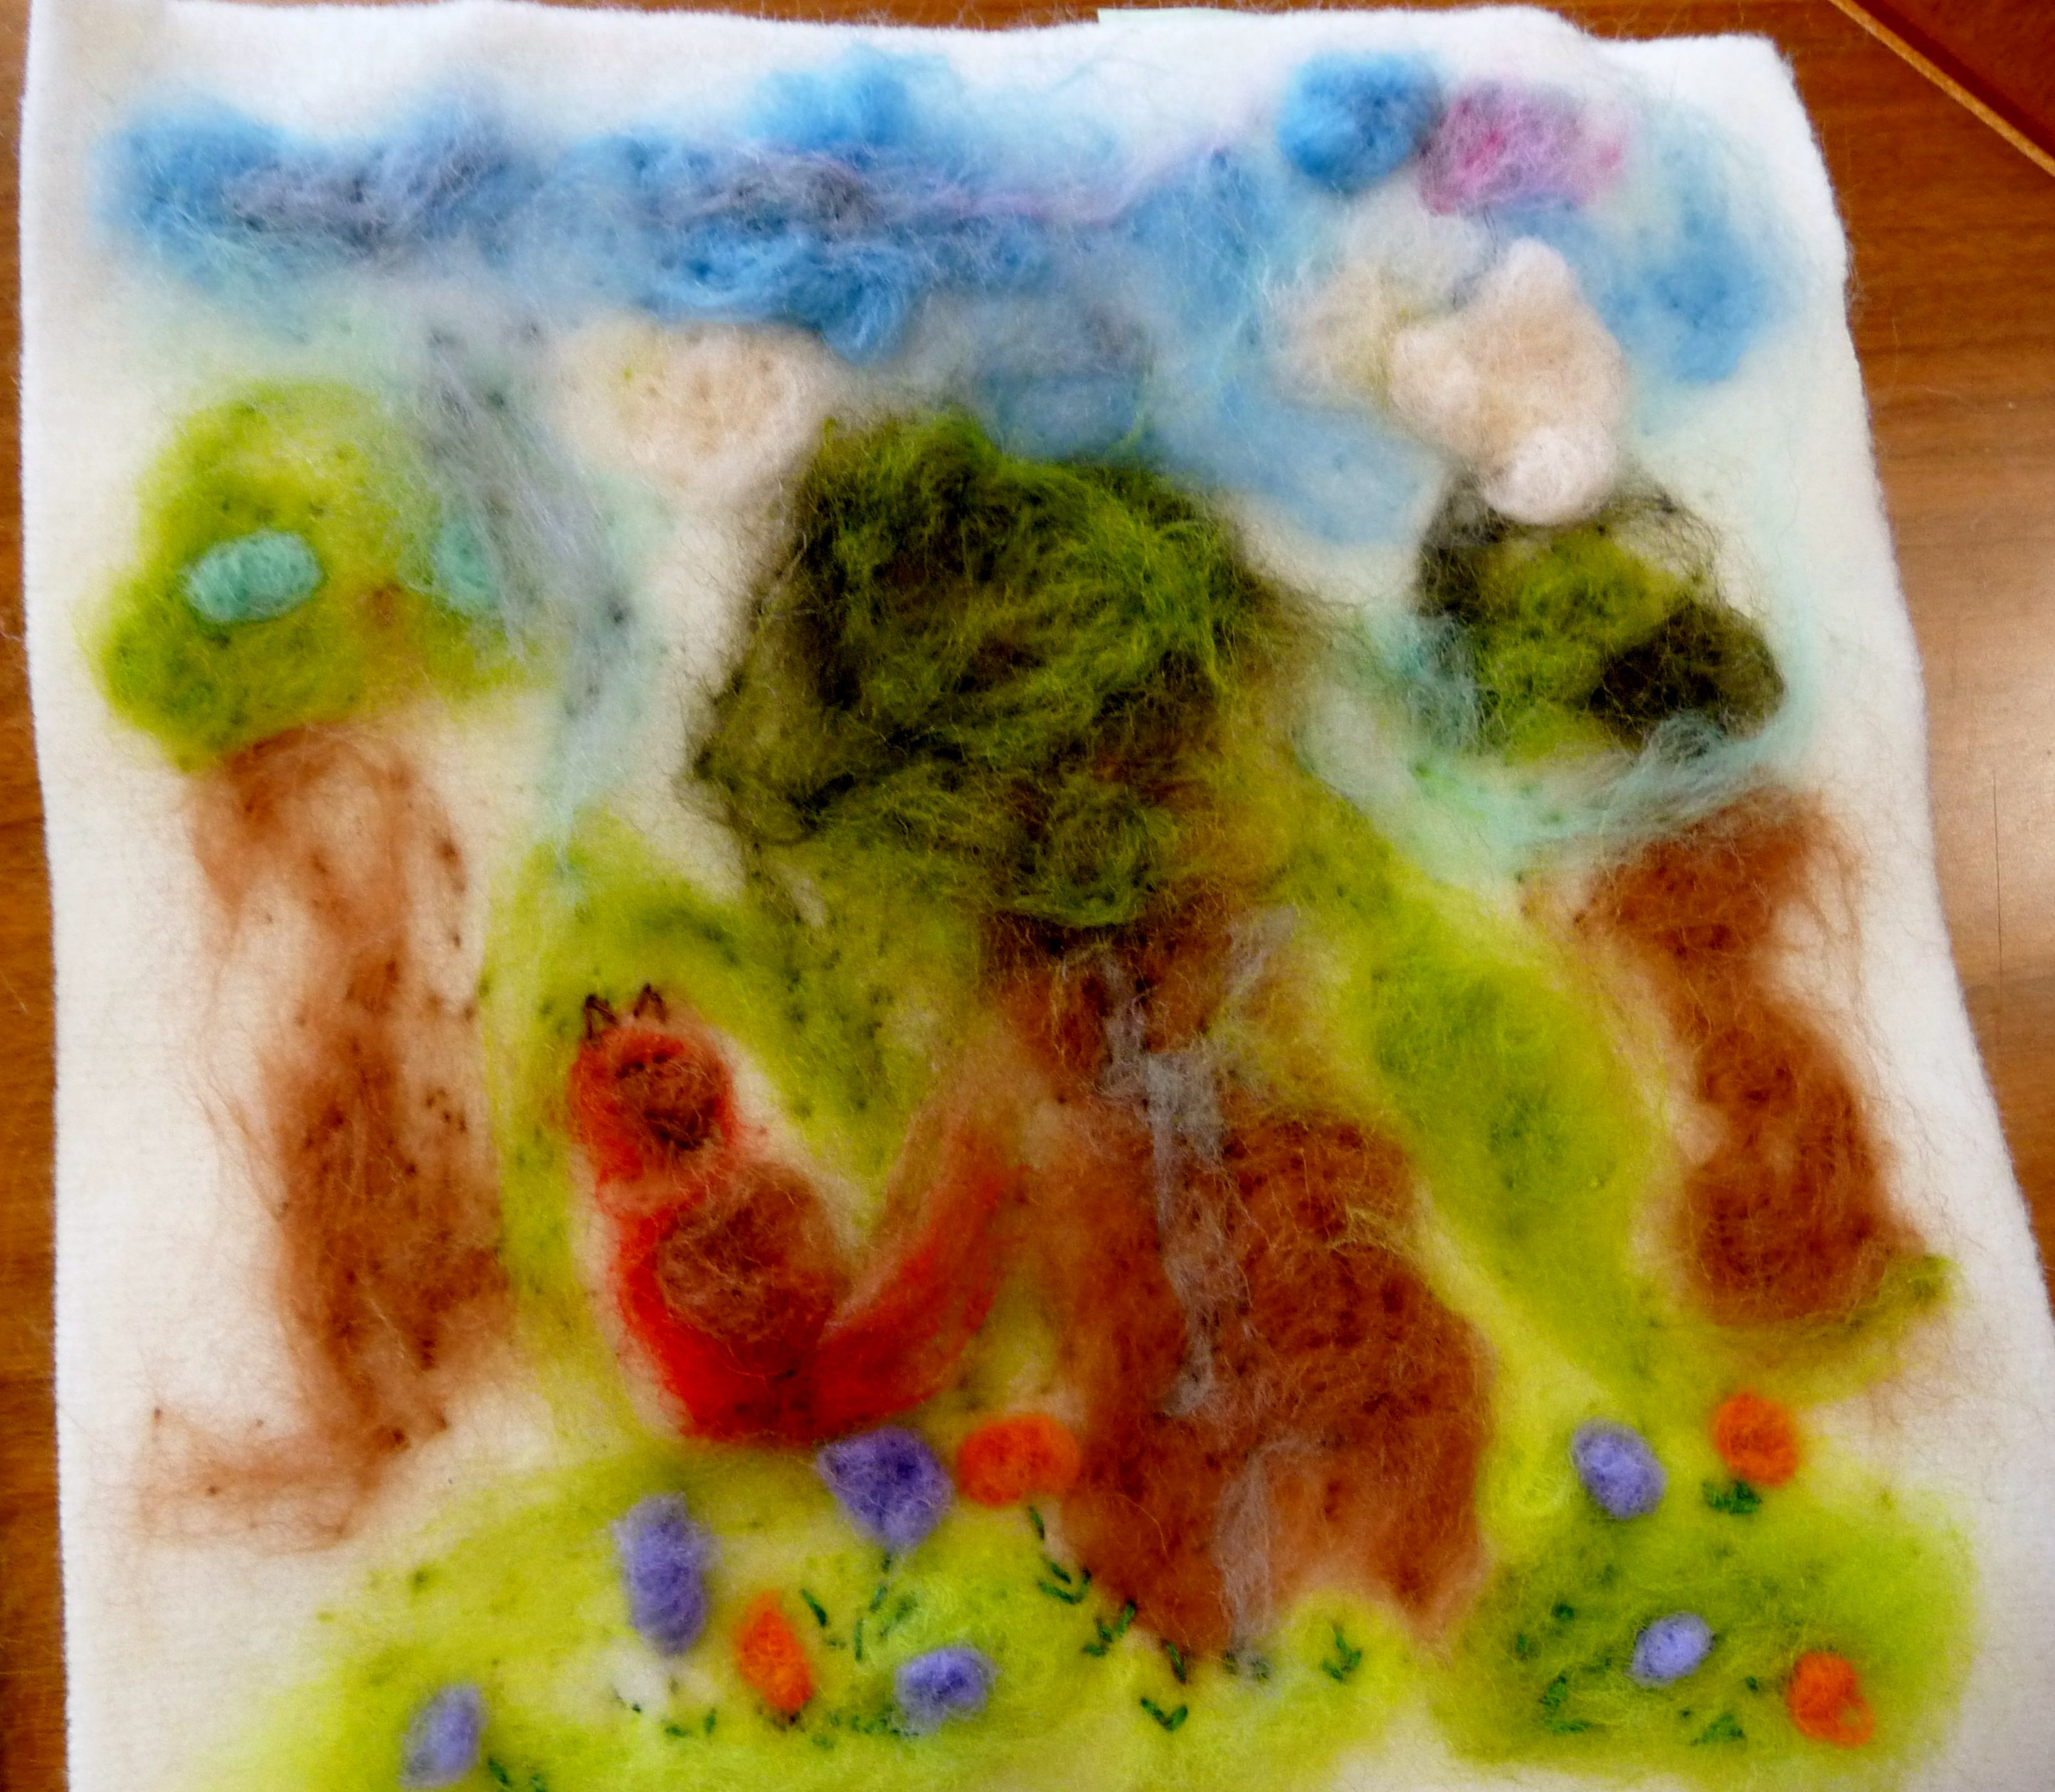 YE group May 2015. This is Esther's completed needlefelted landscape